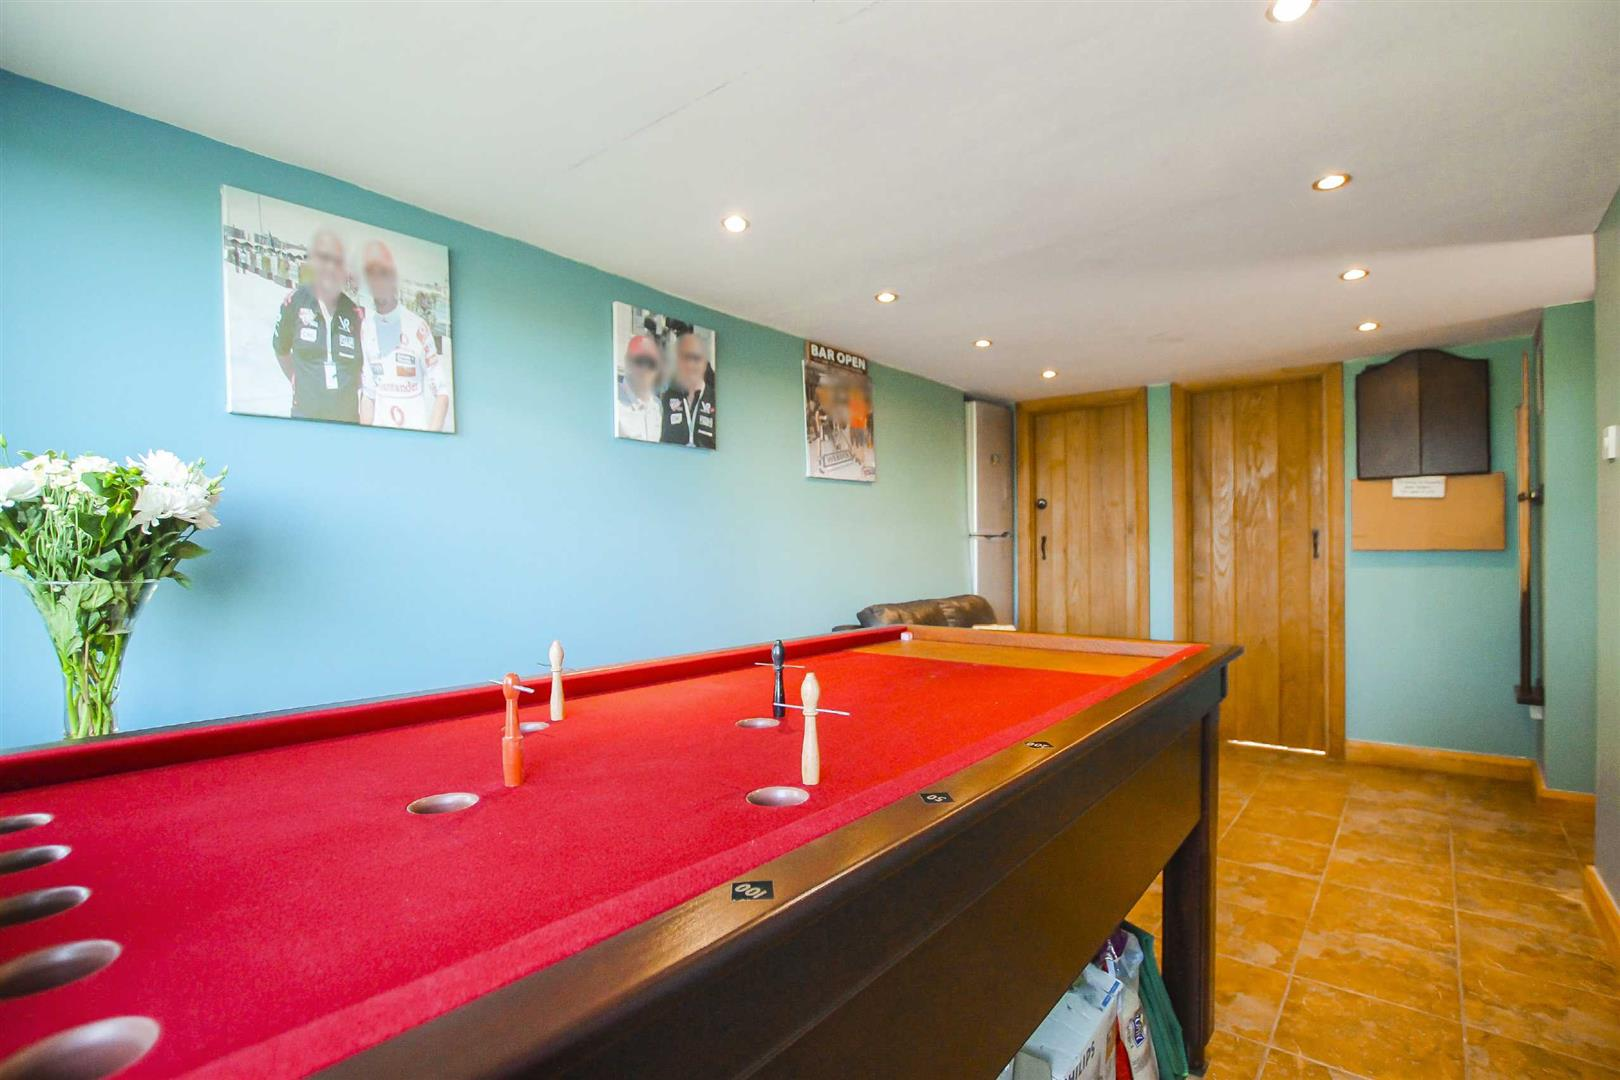 4 Bedroom Semi-detached House For Sale - Image 17